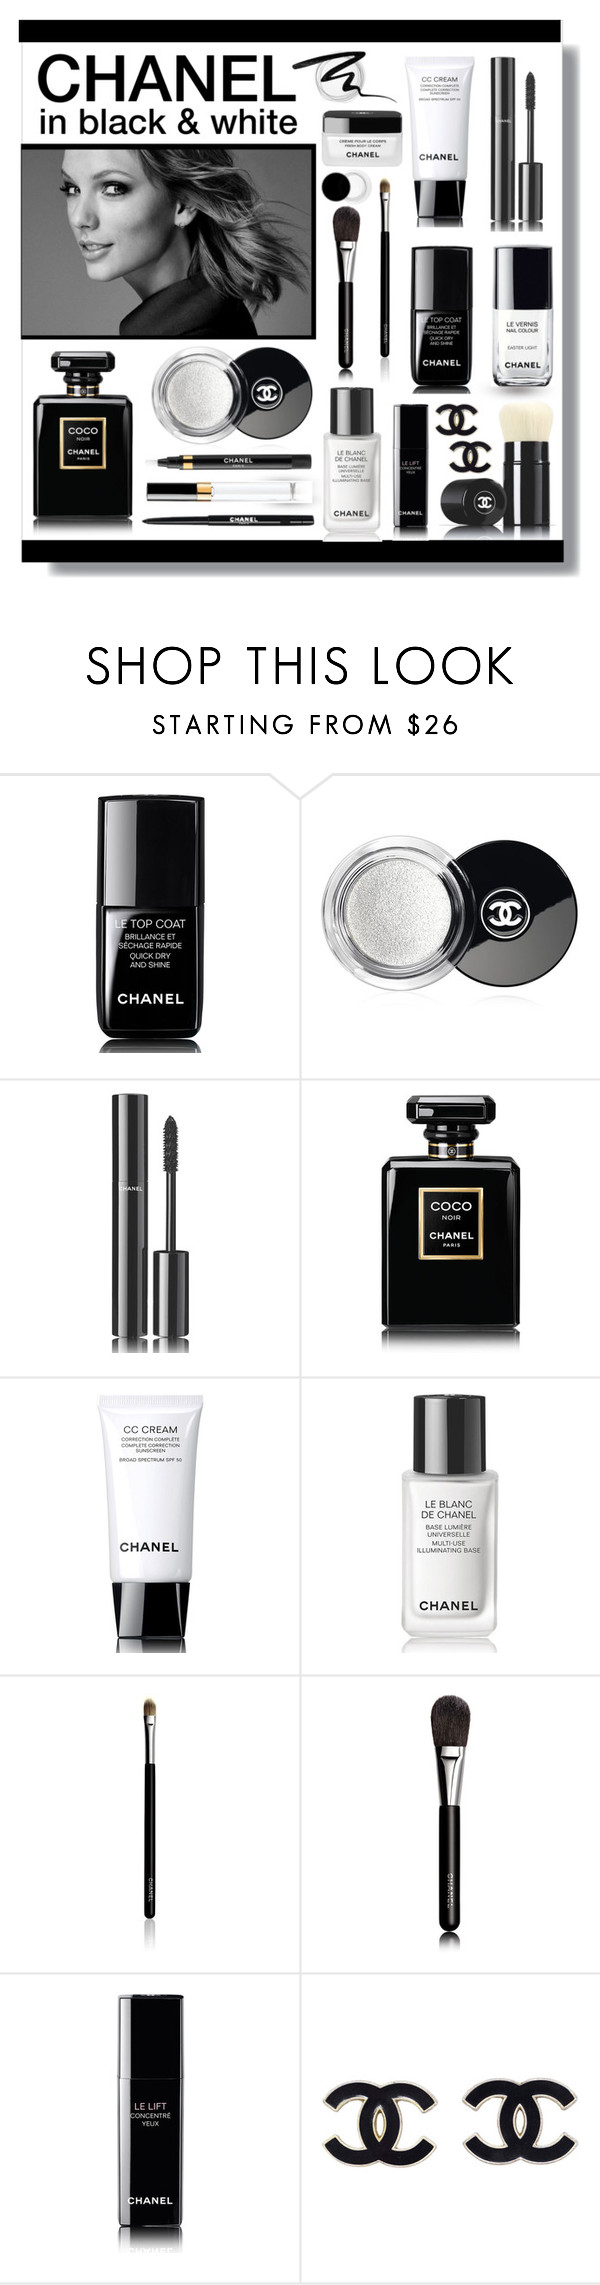 """CHANEL in black & white"" by lgb321 ❤ liked on Polyvore featuring beauty, Chanel, Too Faced Cosmetics, blackandwhite and beautyset"